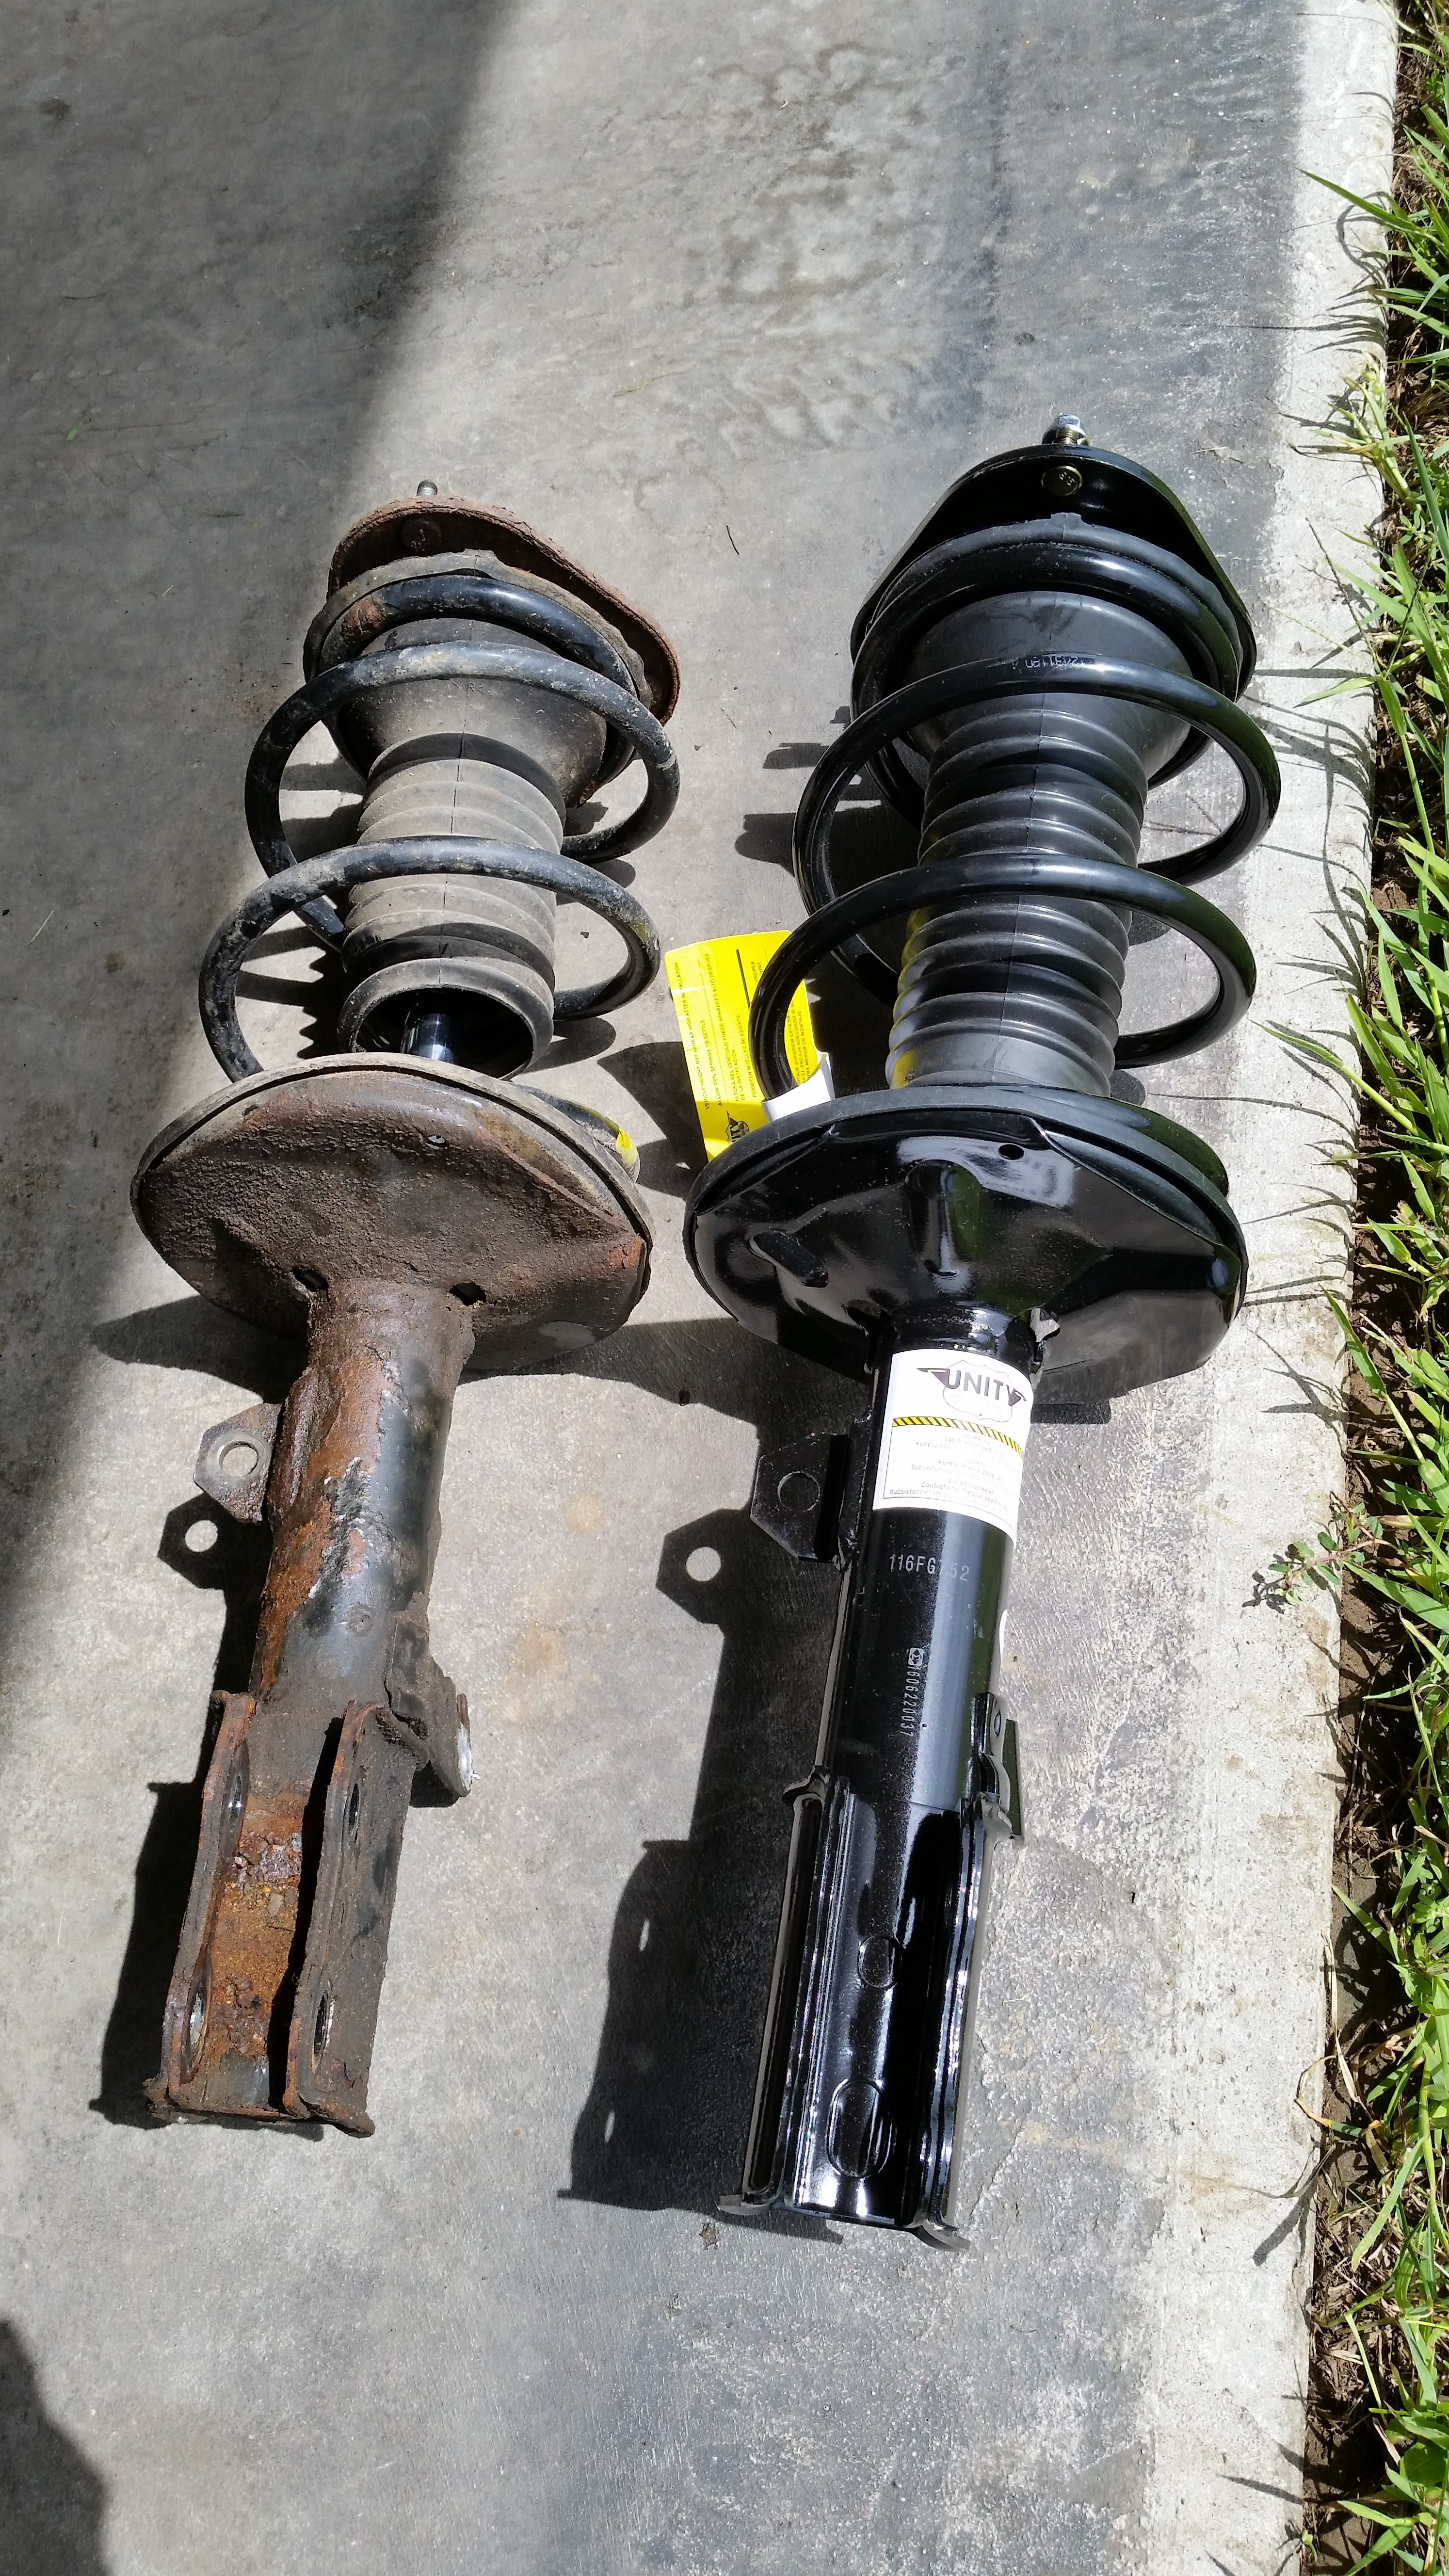 Replacing stabilizer struts: how to do the work yourself 12